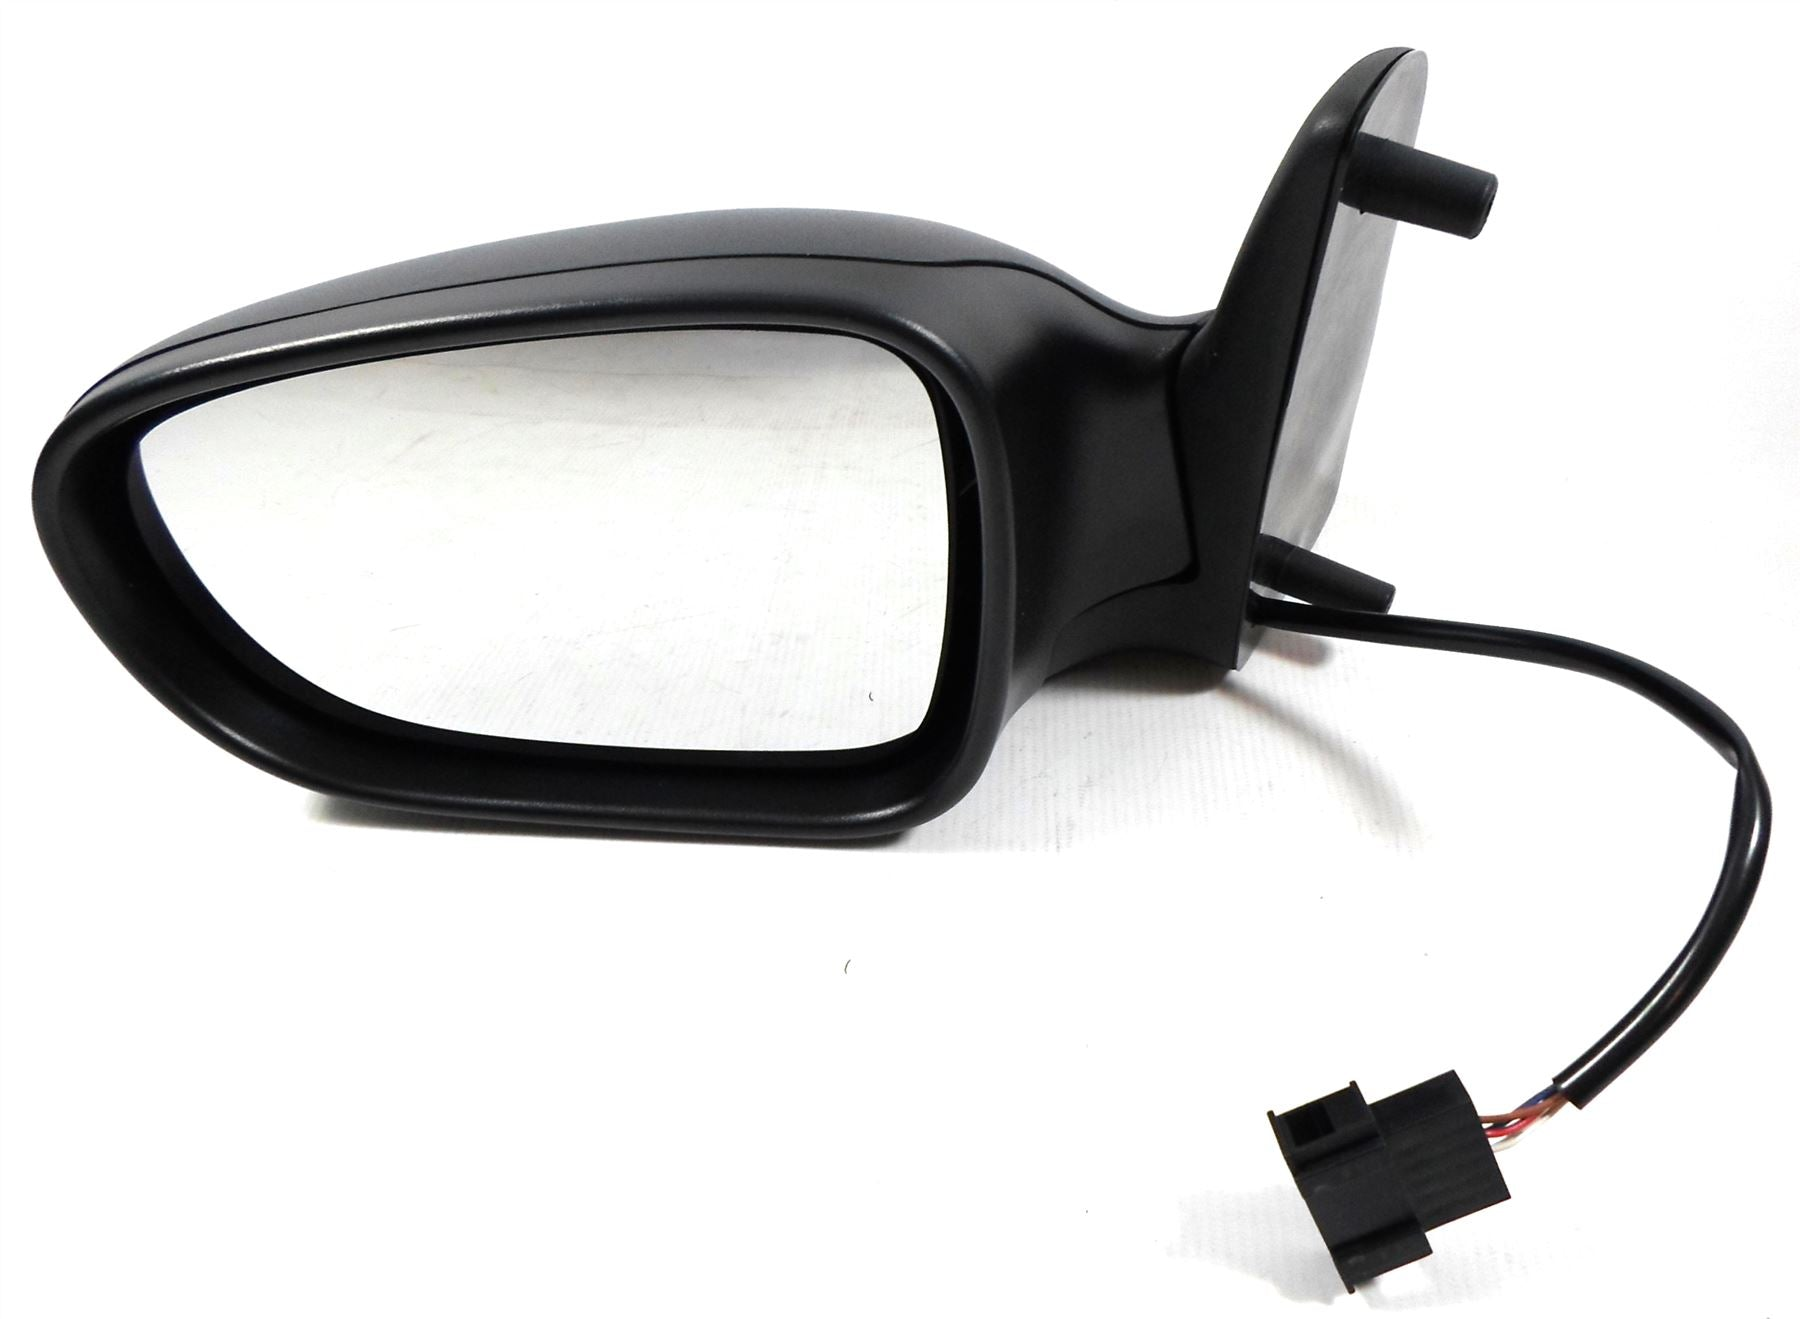 LTI TX4 2006-2010 Electric Wing Mirror Heated Black Textured Passenger Side N/S